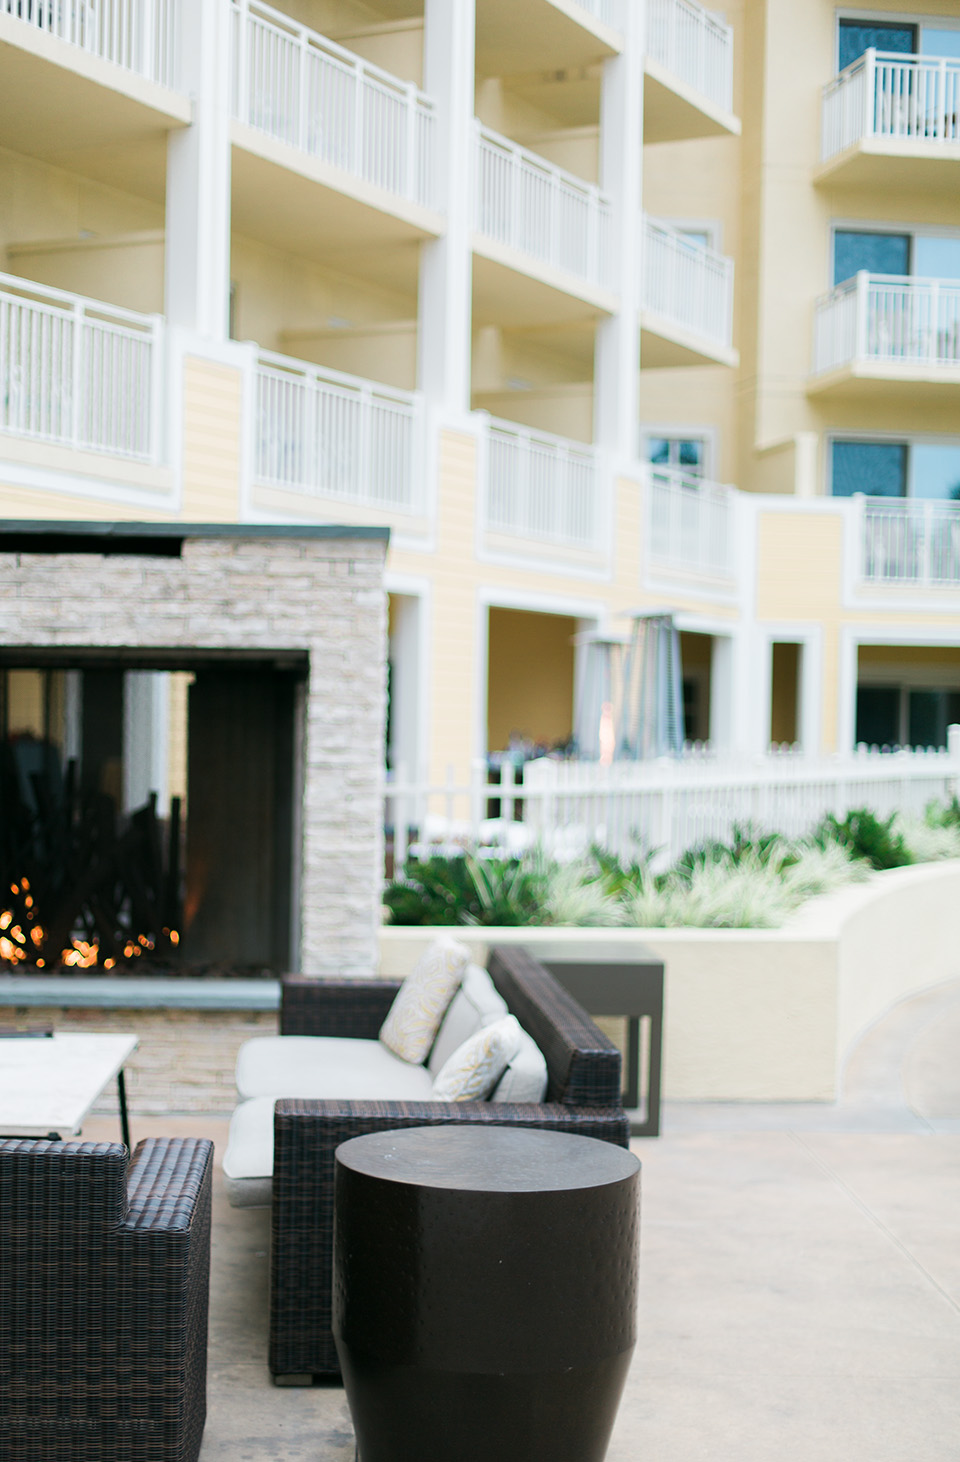 Image of one of the outdoor lounge areas at the Omni Amelia Island Plantation Resort.  There is a fireplace and comfortable furniture for sitting.